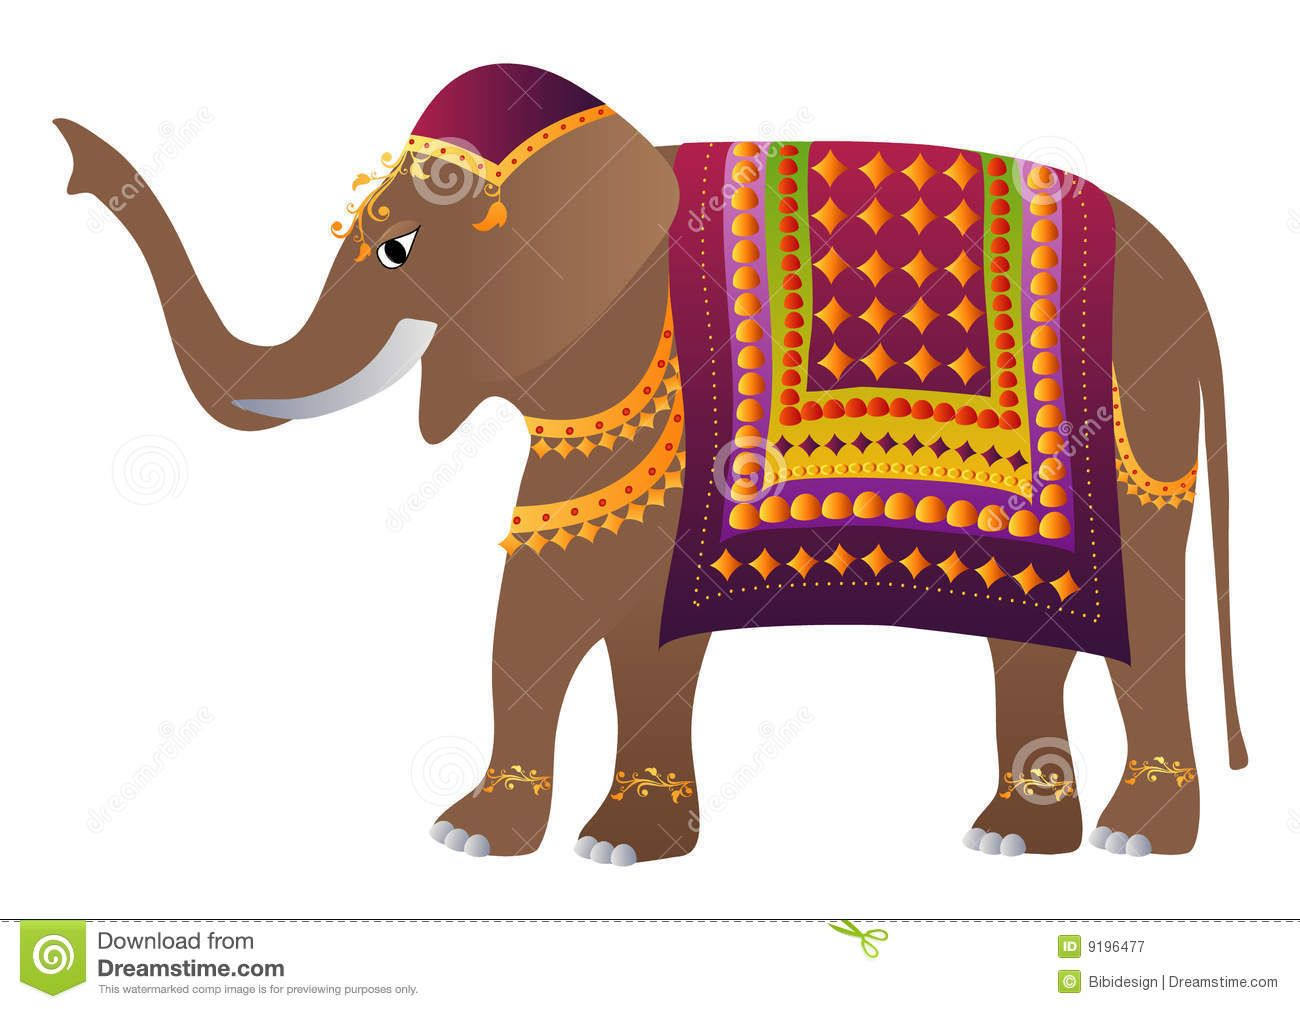 Decorated Indian Elephant Download From Over 30 Million High Quality Stock Photos Images Vectors Sign U Indian Elephant Art Indian Elephant Elephant Decor